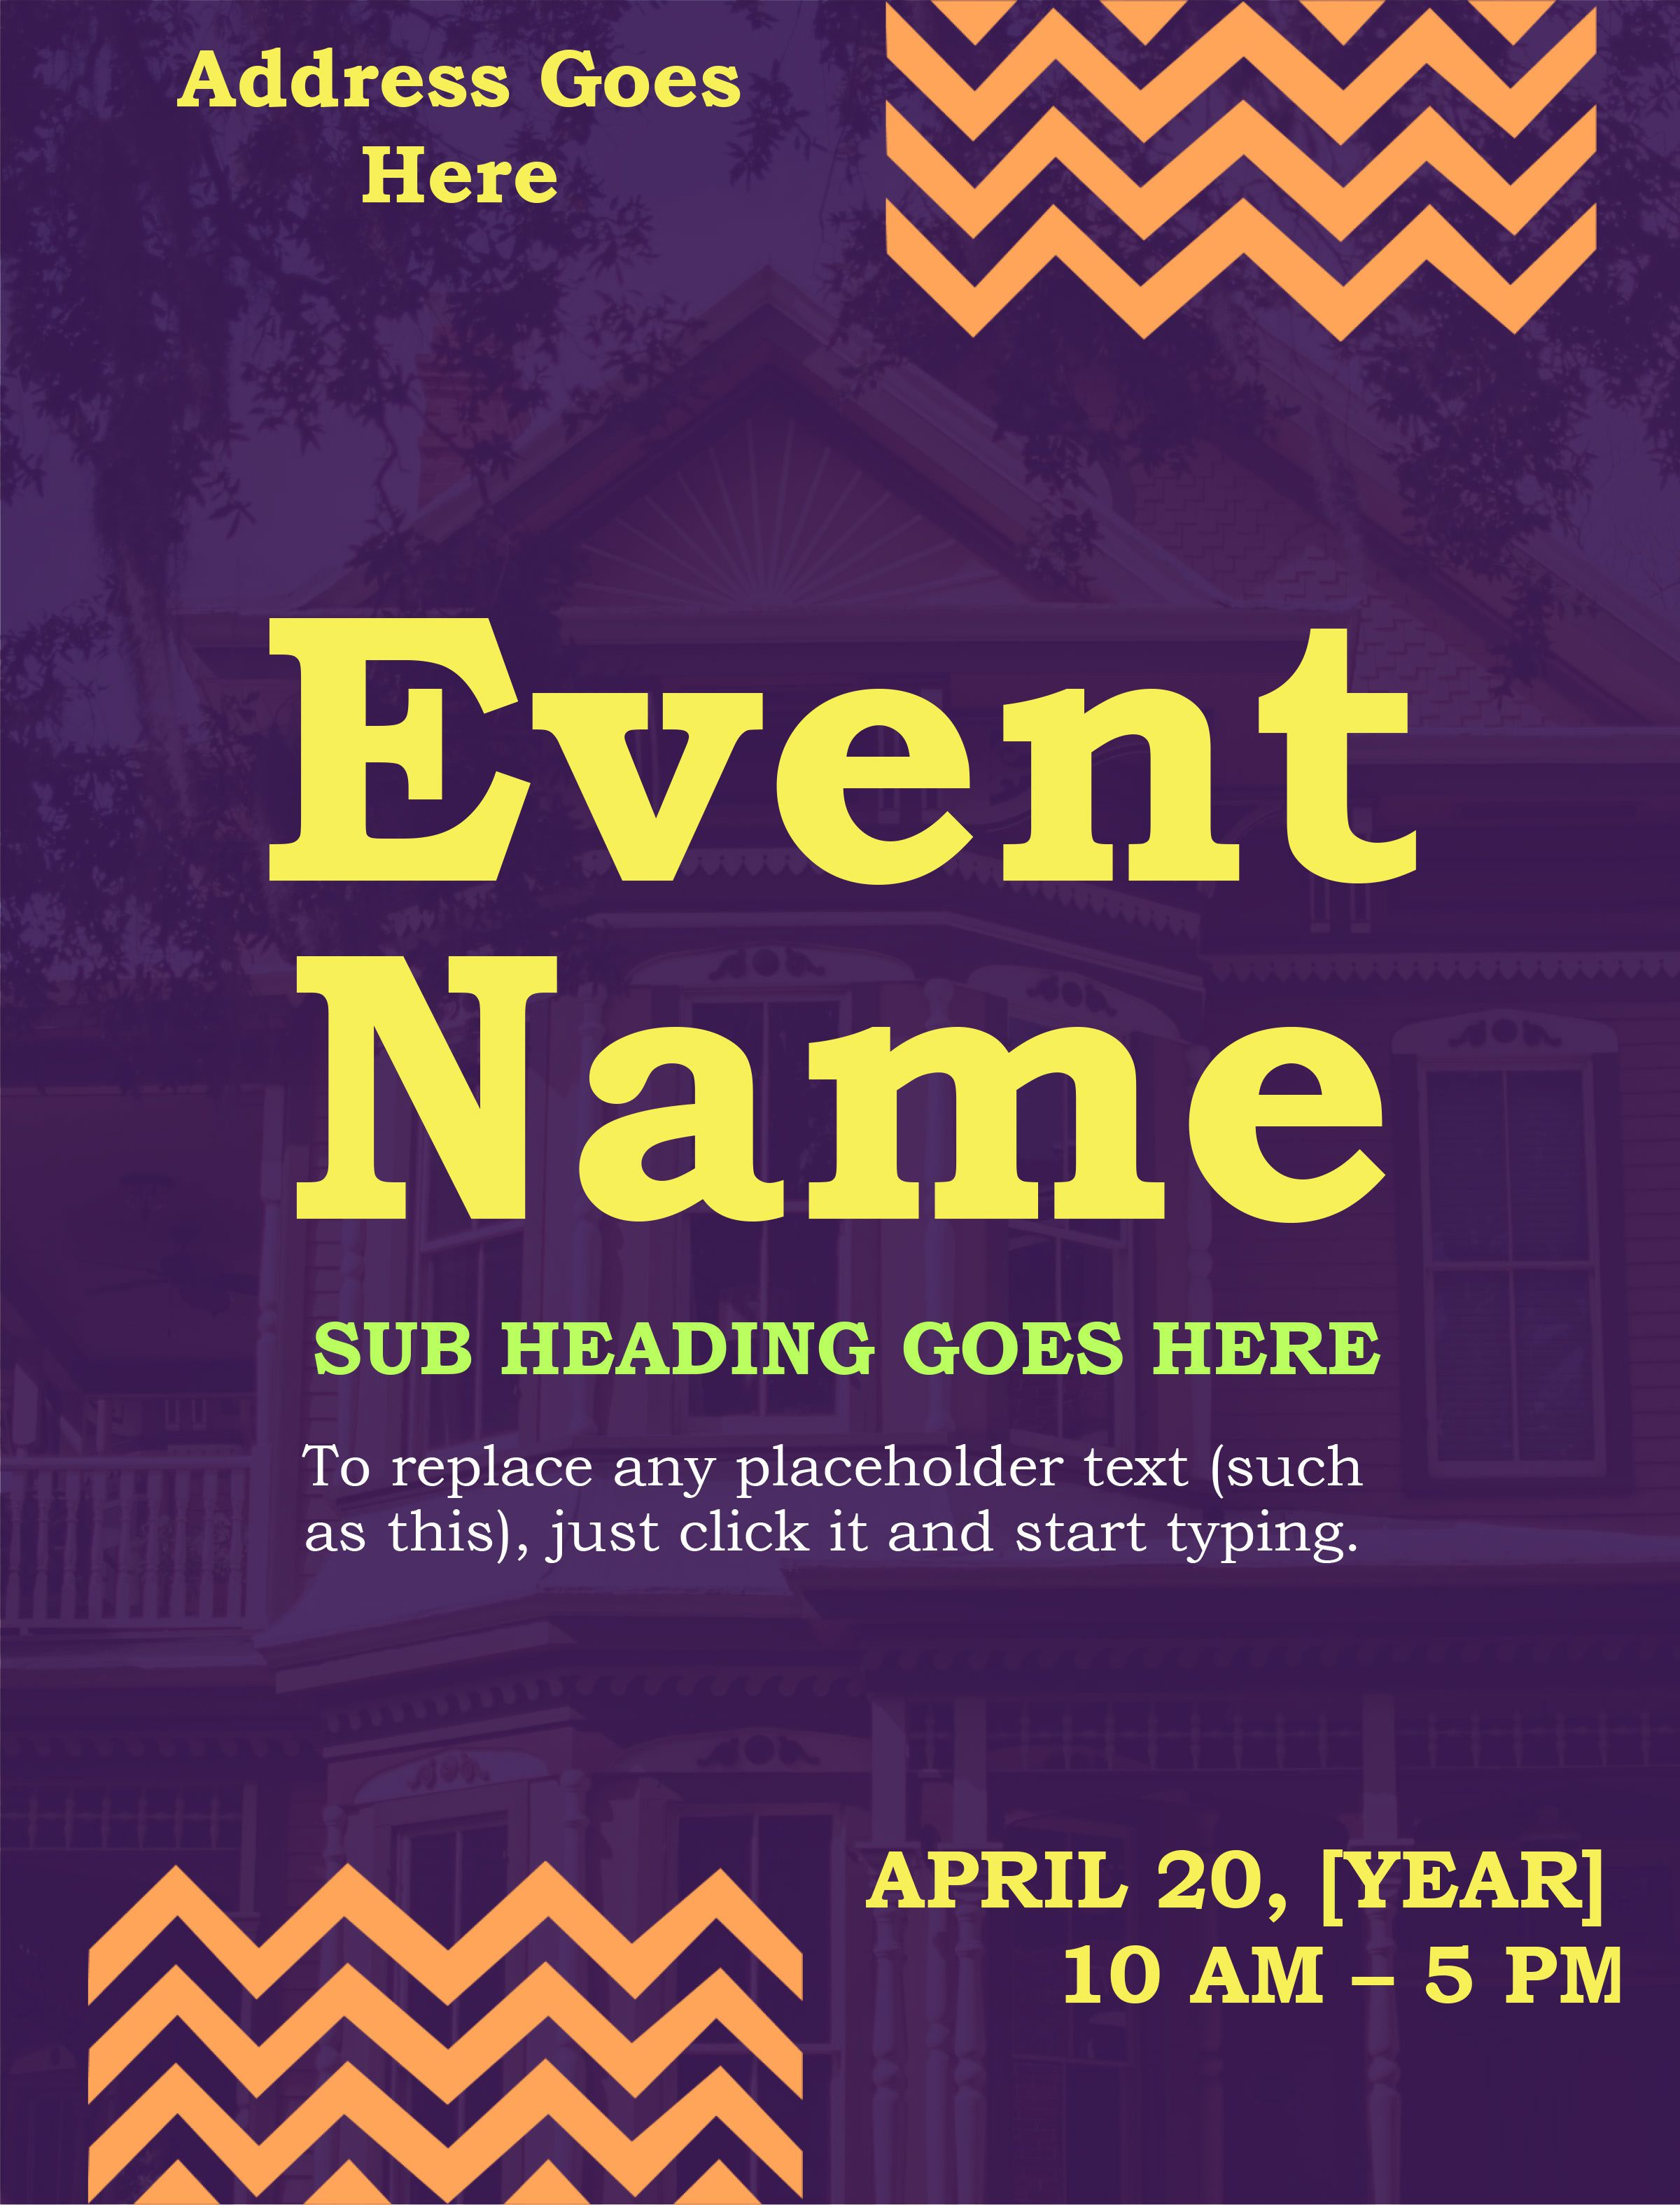 009 Shocking Event Flyer Template Free Printable Sample  ChurchFull